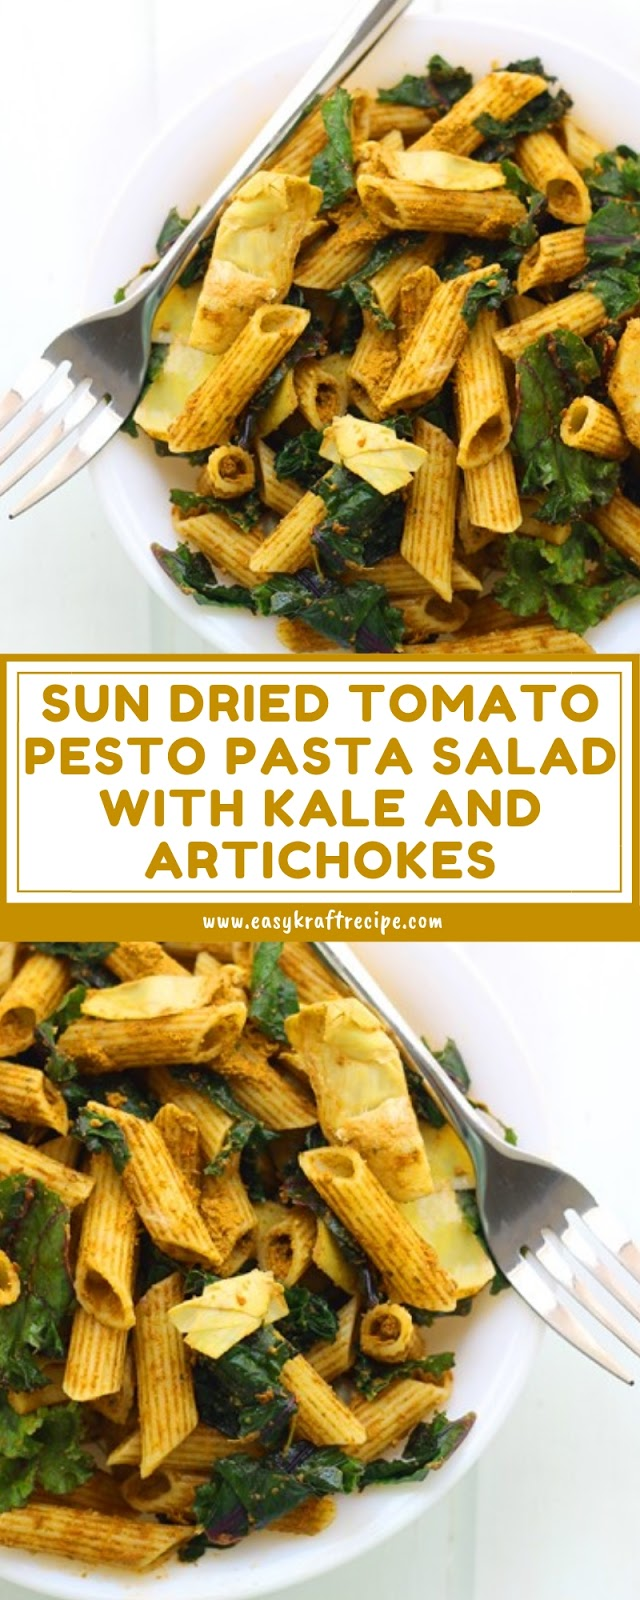 SUN DRIED TOMATO PESTO PASTA SALAD WITH KALE AND ARTICHOKES